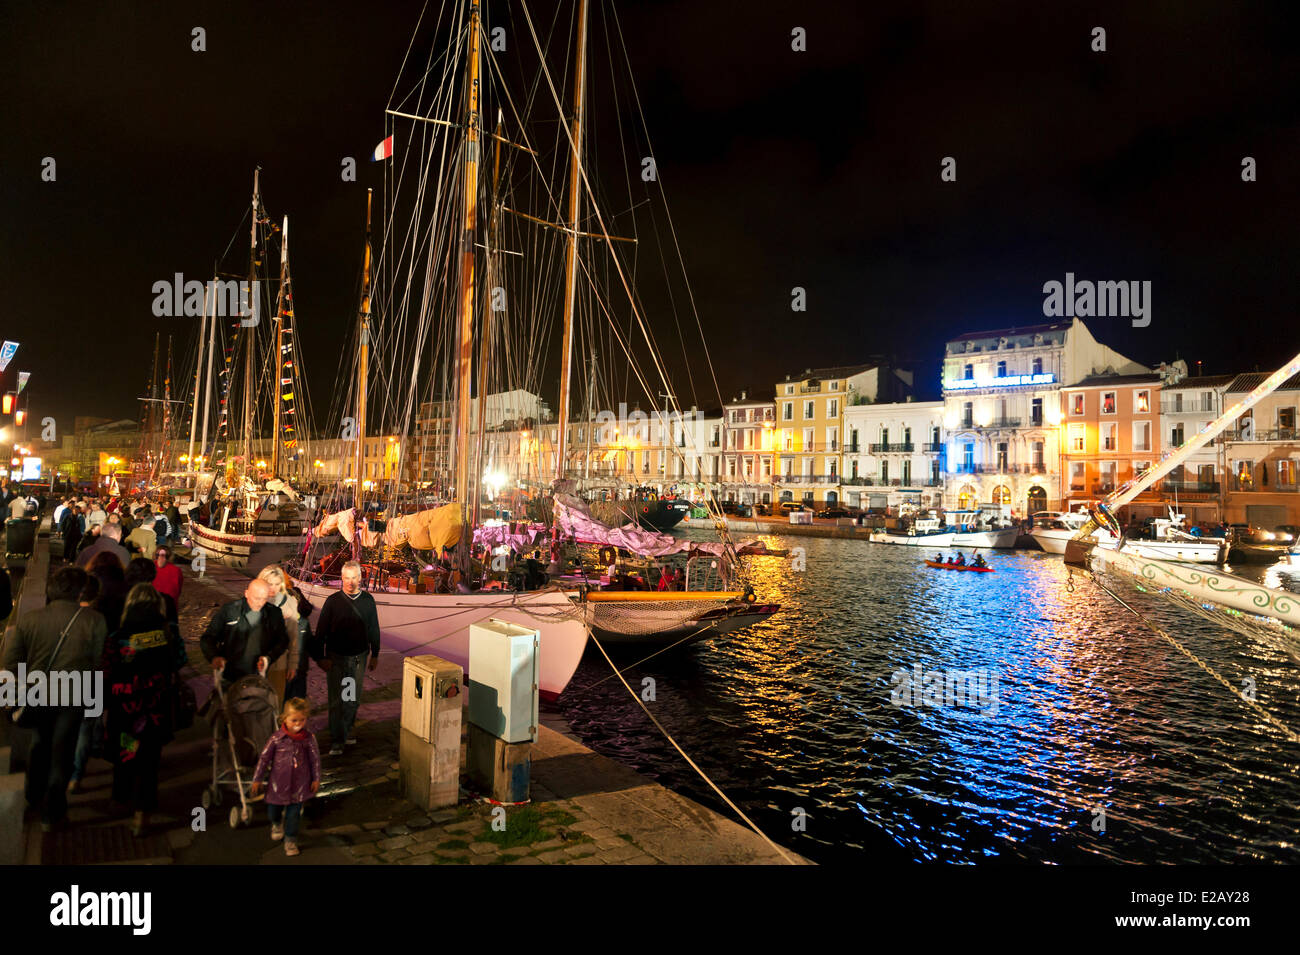 France, Herault, Sete, Quai du General Durand, Royal Canal, Maritime Traditions Festival, walkers on a dock at night - Stock Image